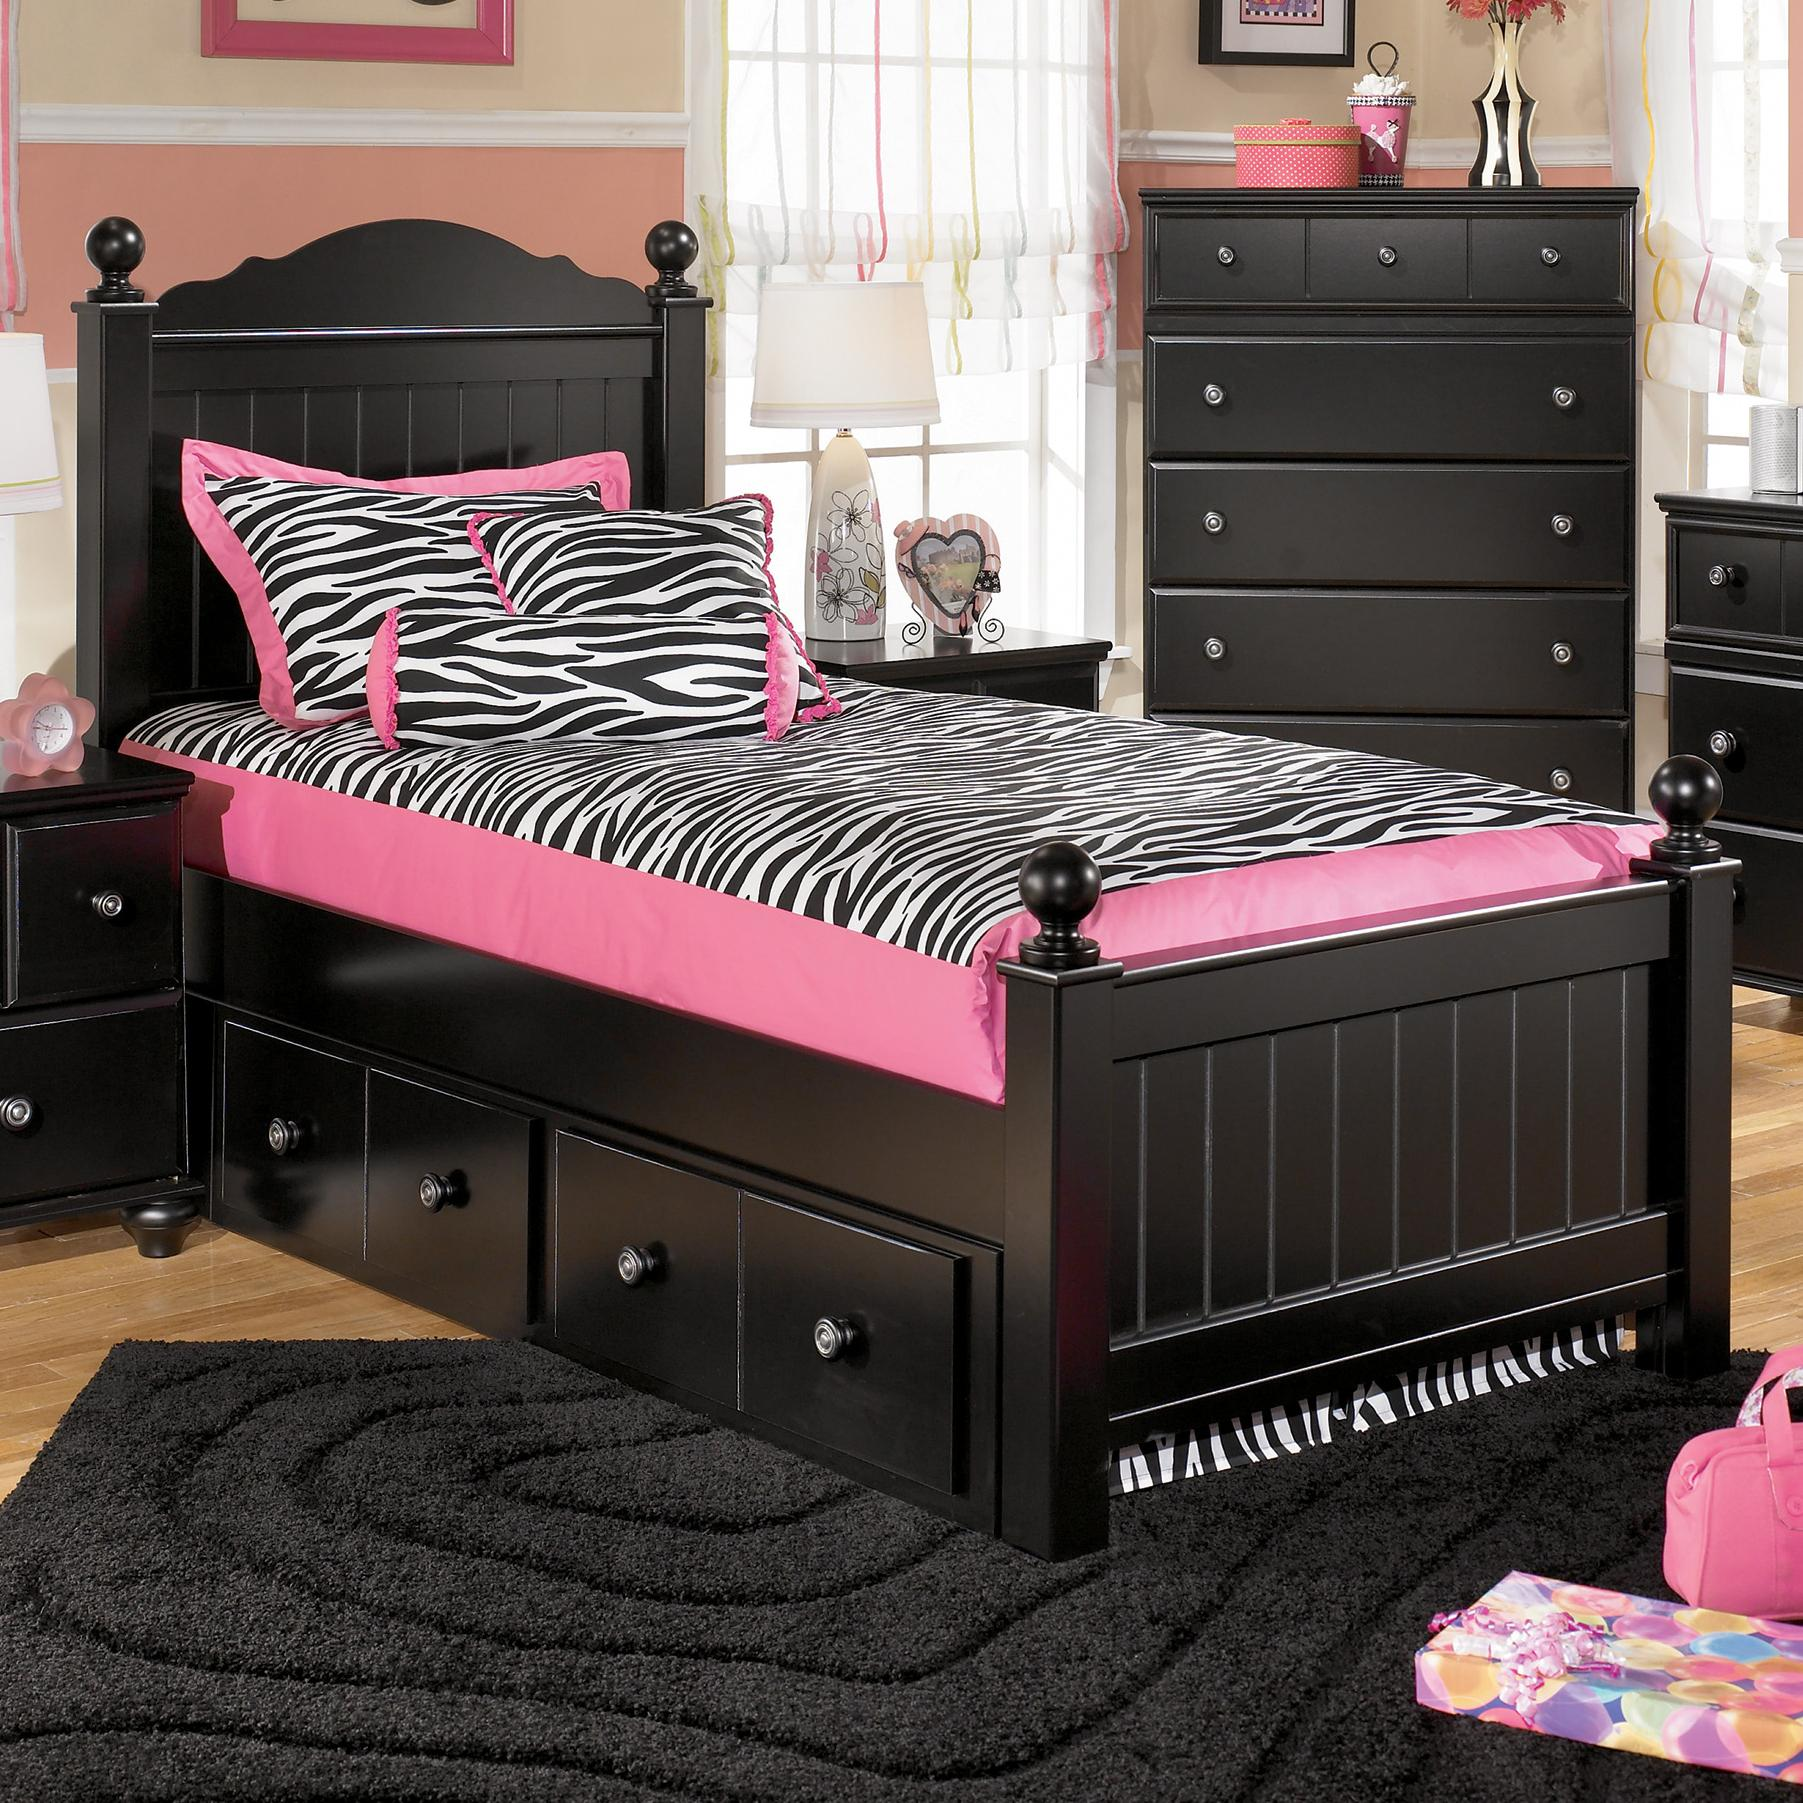 Signature Design by Ashley Jaidyn Twin Poster Bed with Underbed Storage - Item Number: B150-53+52+83+60